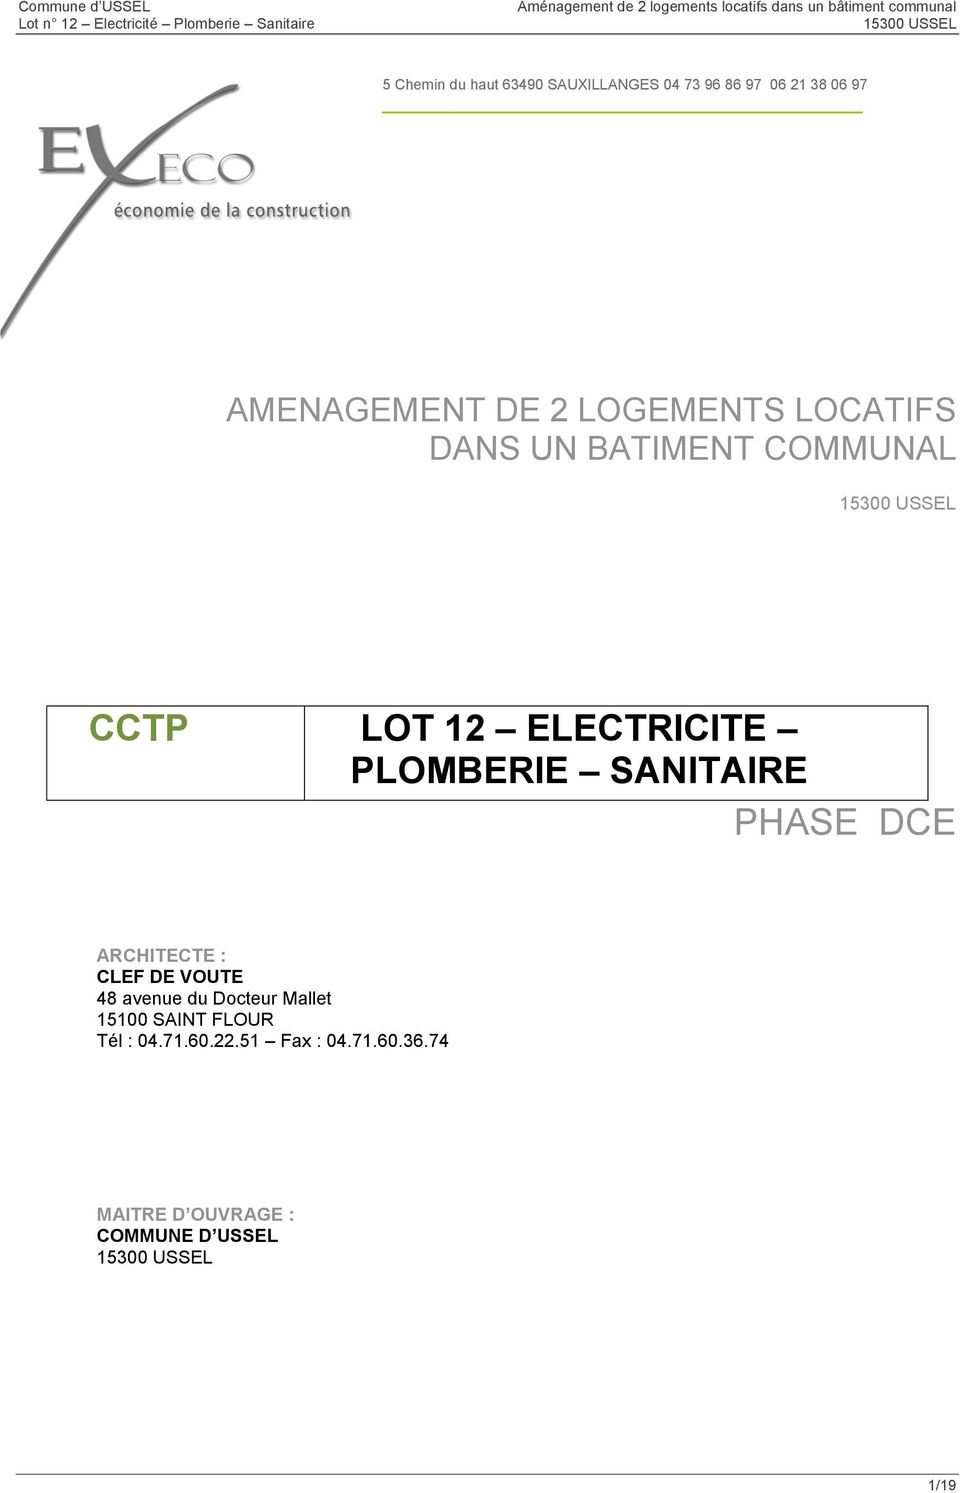 Cctp lot 12 electricite plomberie sanitaire phase dce pdf for Cctp architecte